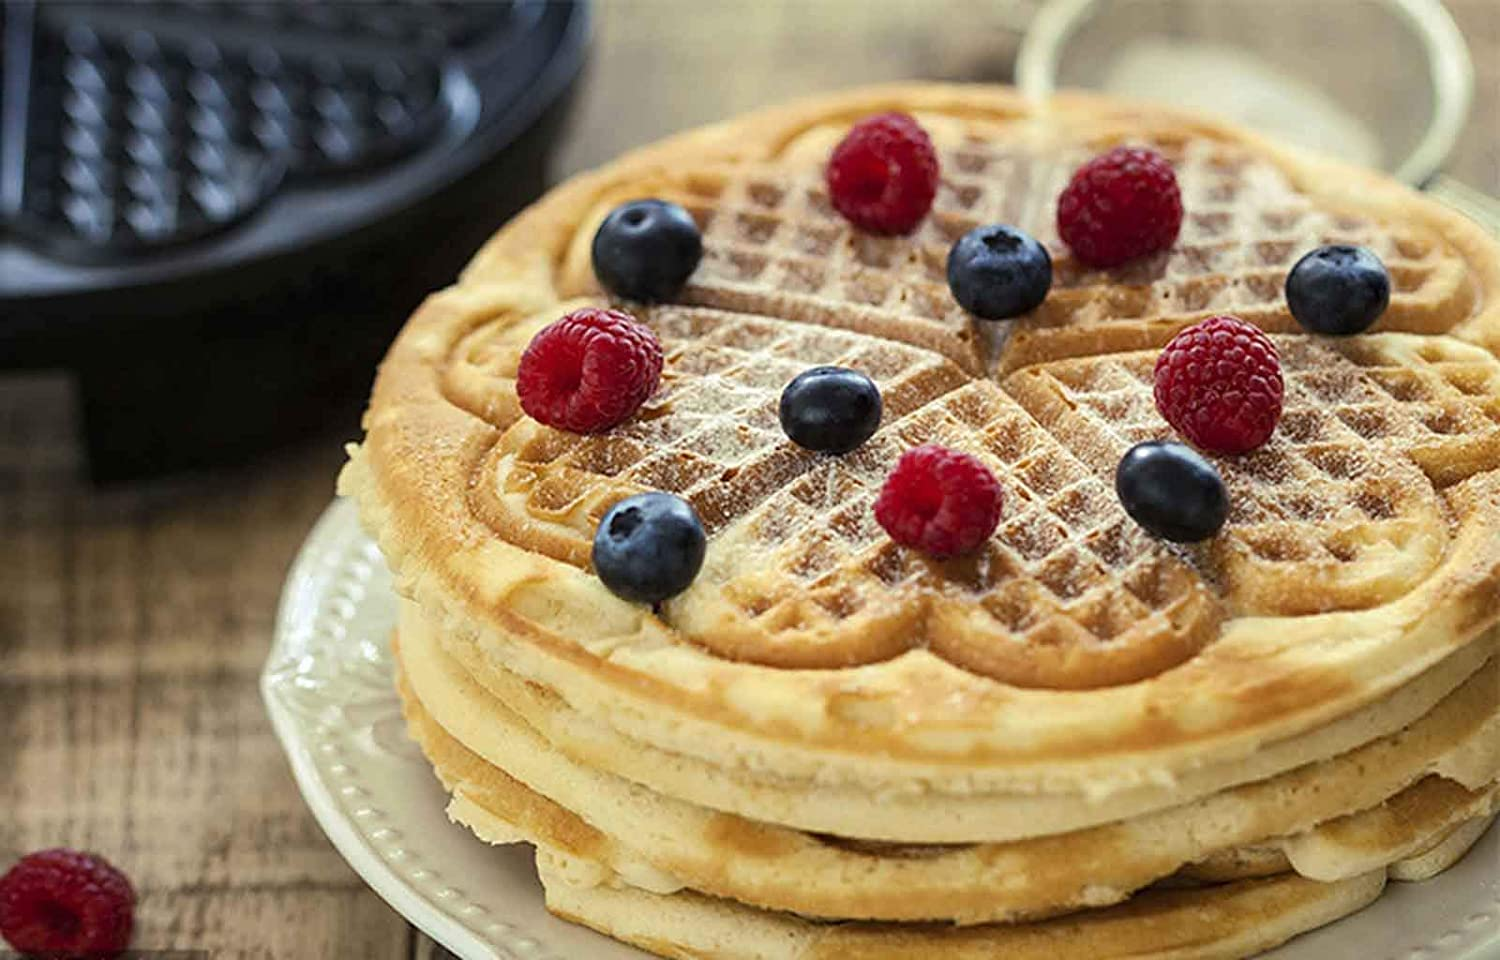 Waffle Maker Electric Double Heart Shape Waffle Iron Waffles DIY Cooking Non Stick Adjustable Temperature Control for Breakfast Dessert Party Home Kitchen Kids